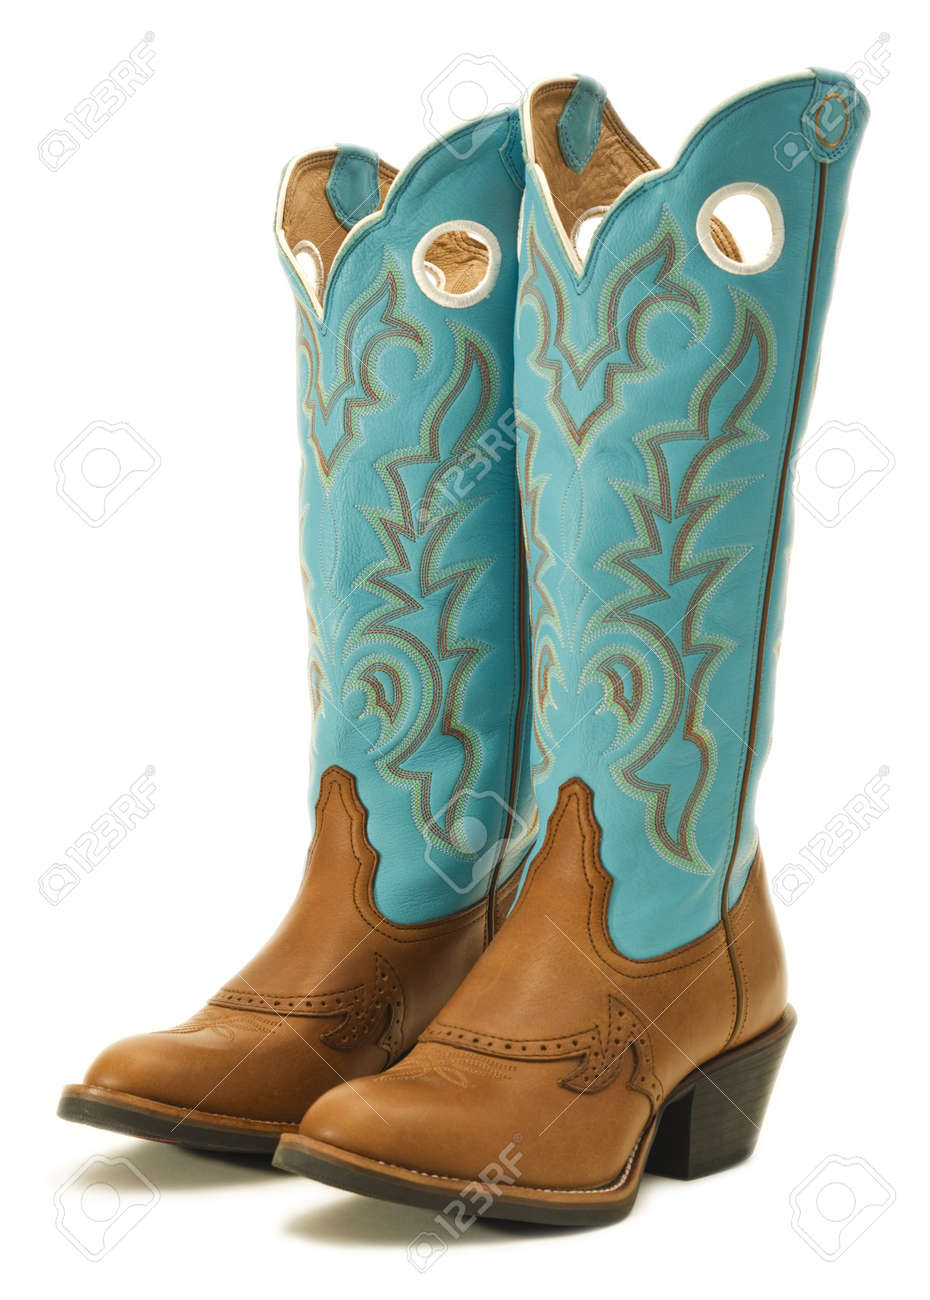 54308d847b3 A pair of cowboy boots on white